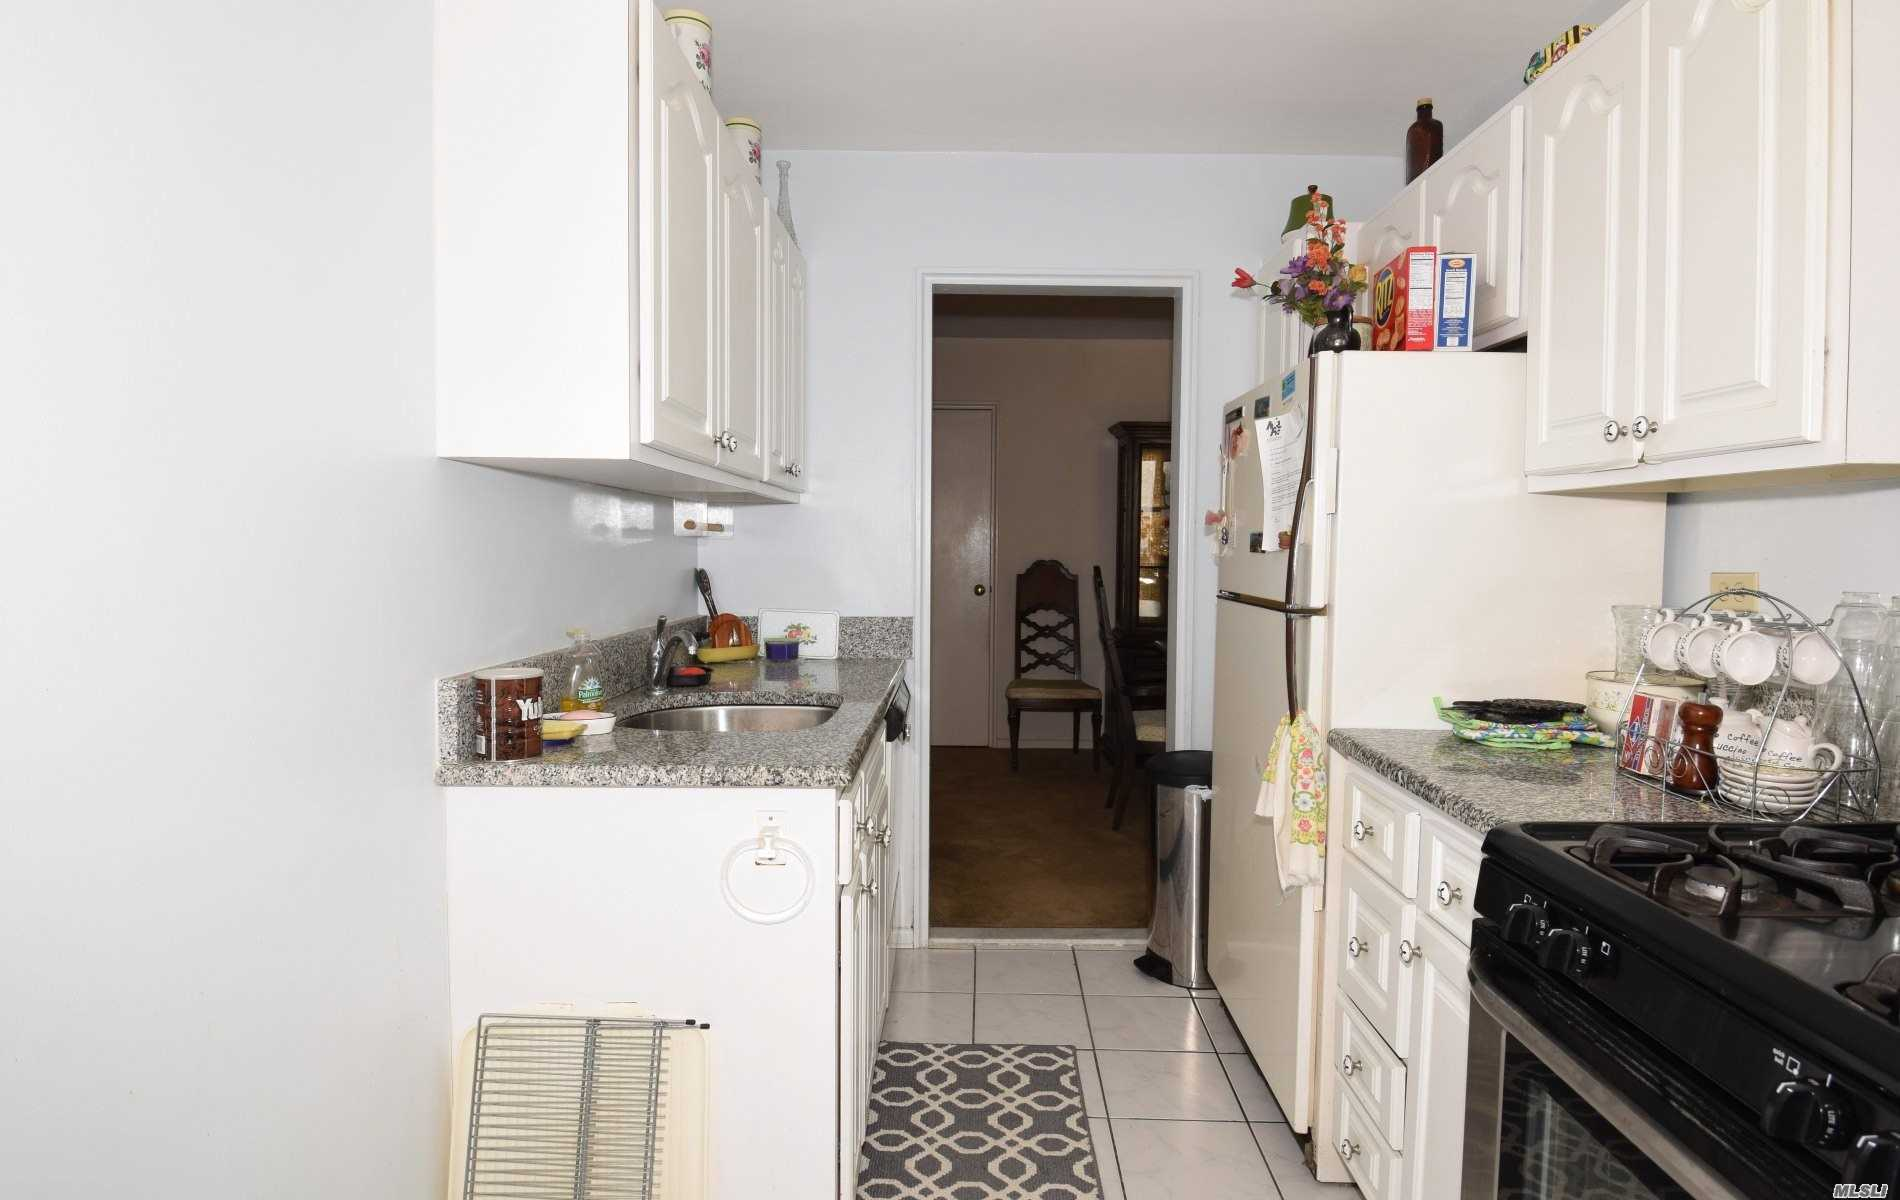 Sunny And Spacious 1100 Sq Ft (Junior 4) Corner Unit Apartment In A Great Building. Maintenance Includes All Utilities (Heat, Water, Gas, Electric). Convenient To Transportation, Express Bus To Manhattan And Bay Terrace Shopping. Elevator Building! Parking Space Available $31/Monthly. Plenty Of Closets Throughout. Seller Paid Assessment.